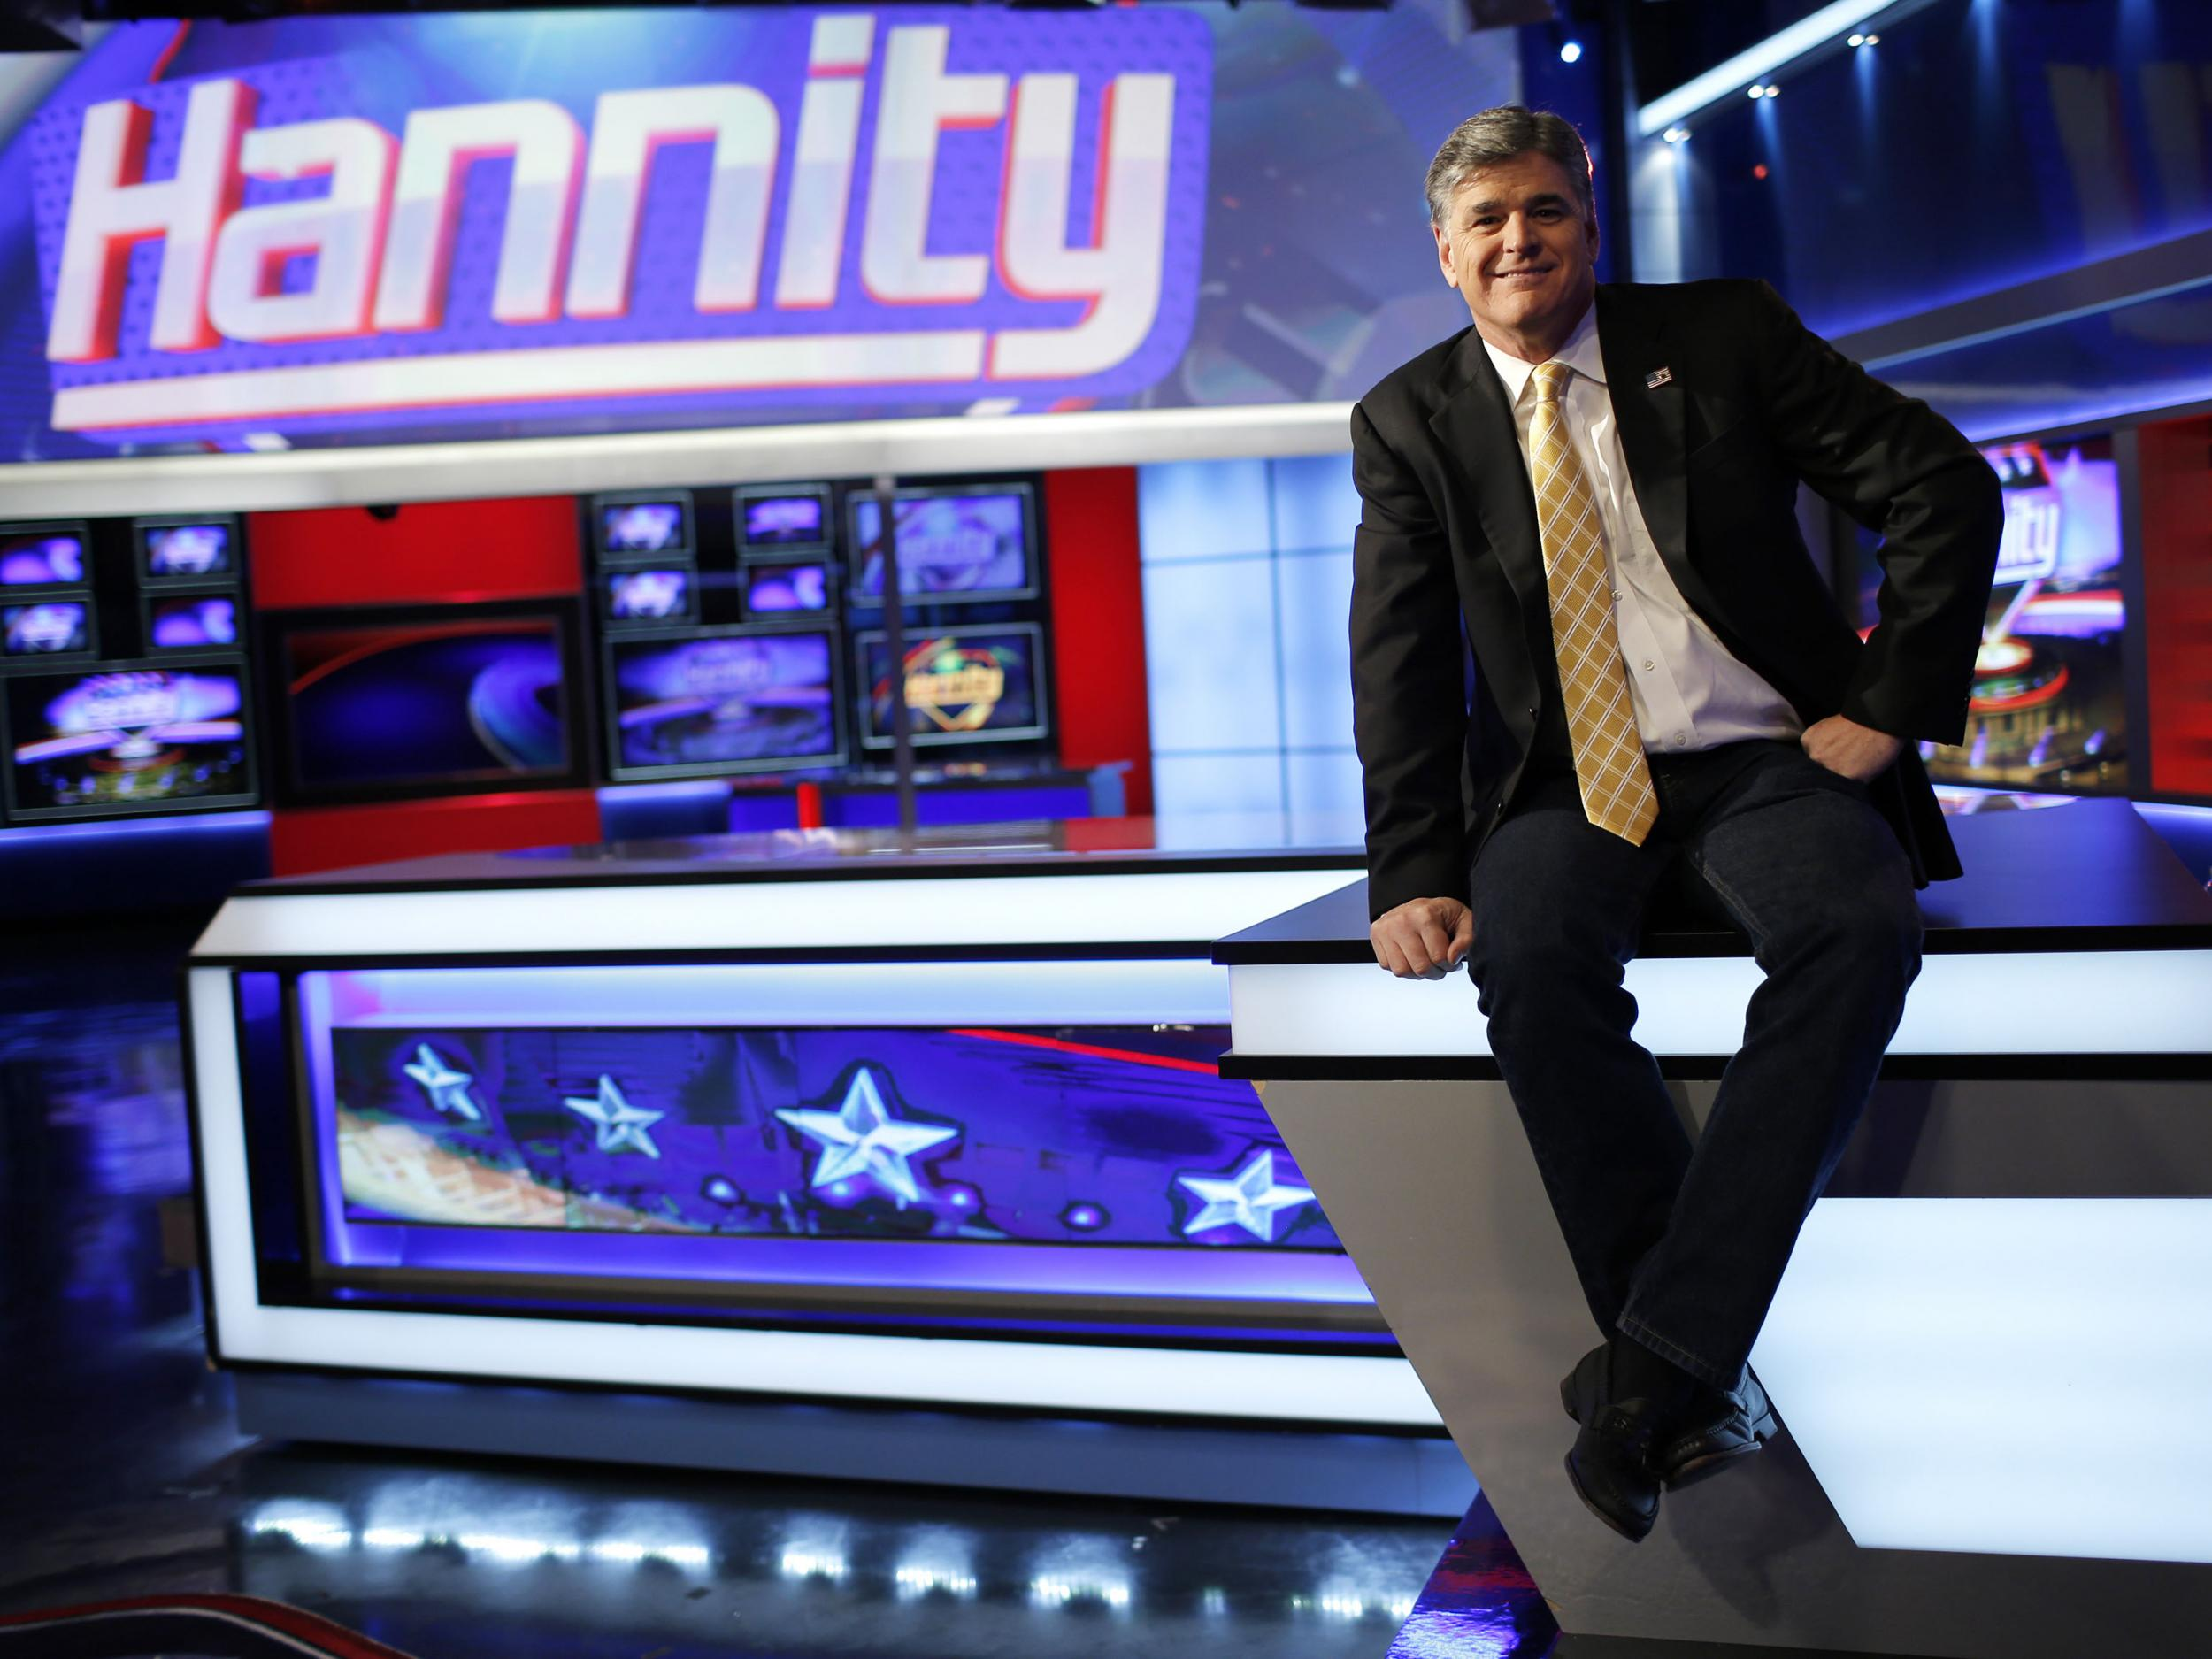 Sean Hannity - latest news, breaking stories and comment